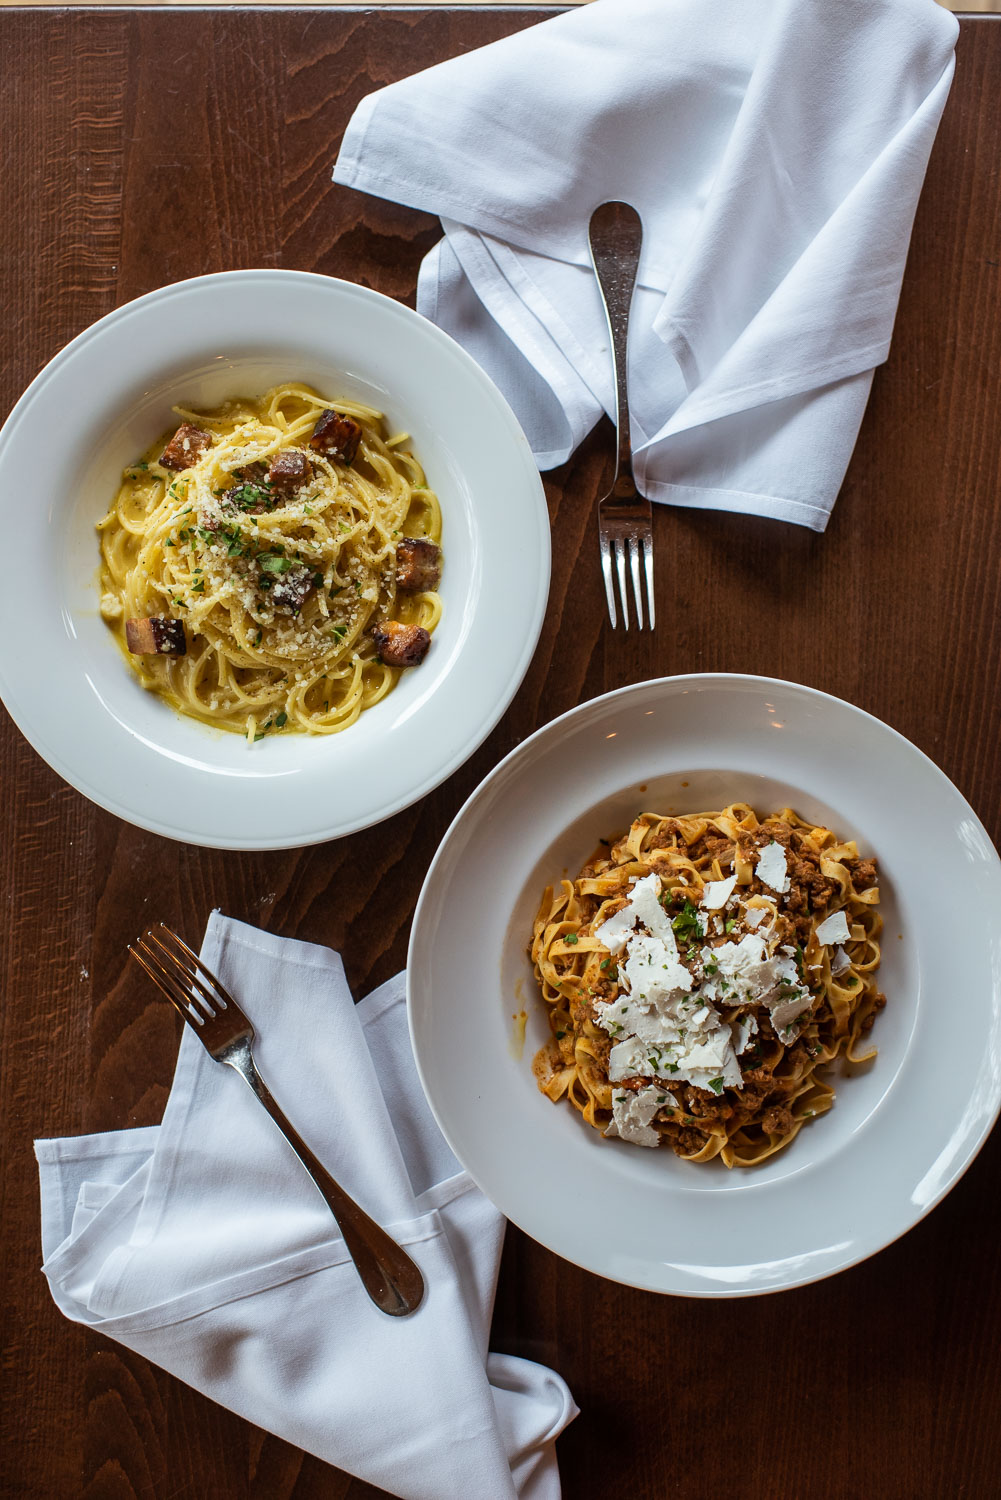 Osteria Mattone Roswell Georgia Restaurants // Angie Webb Photographer